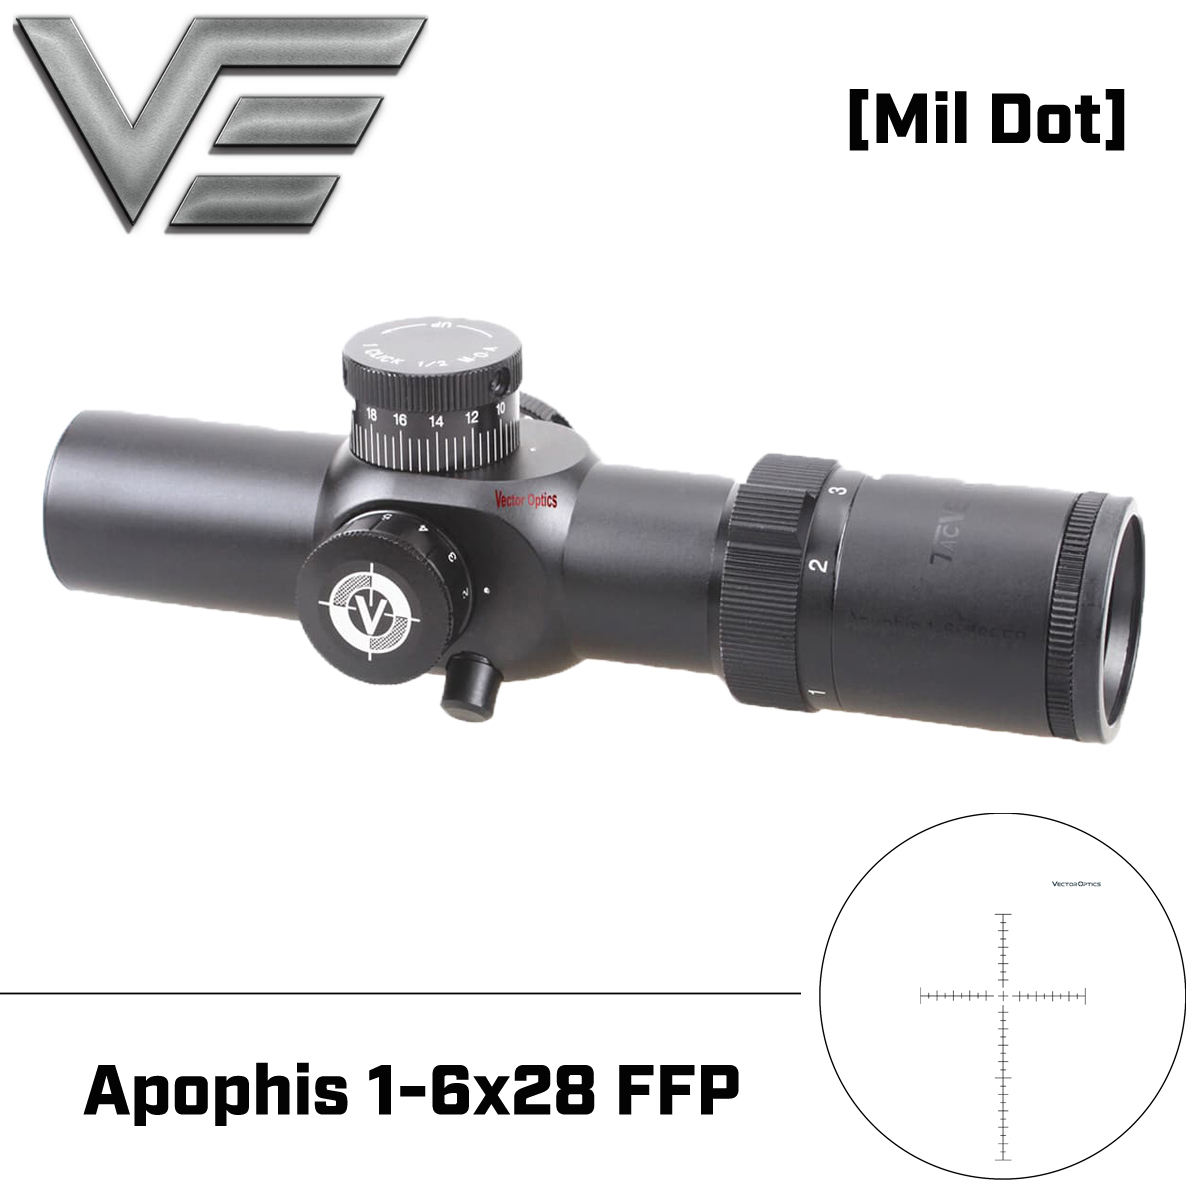 Vector Optics Apophis 1-6x28 FFP 35mm Tactical Riflescope AR15 Compact Rifle Scope MP MOA Reticle For Shooting